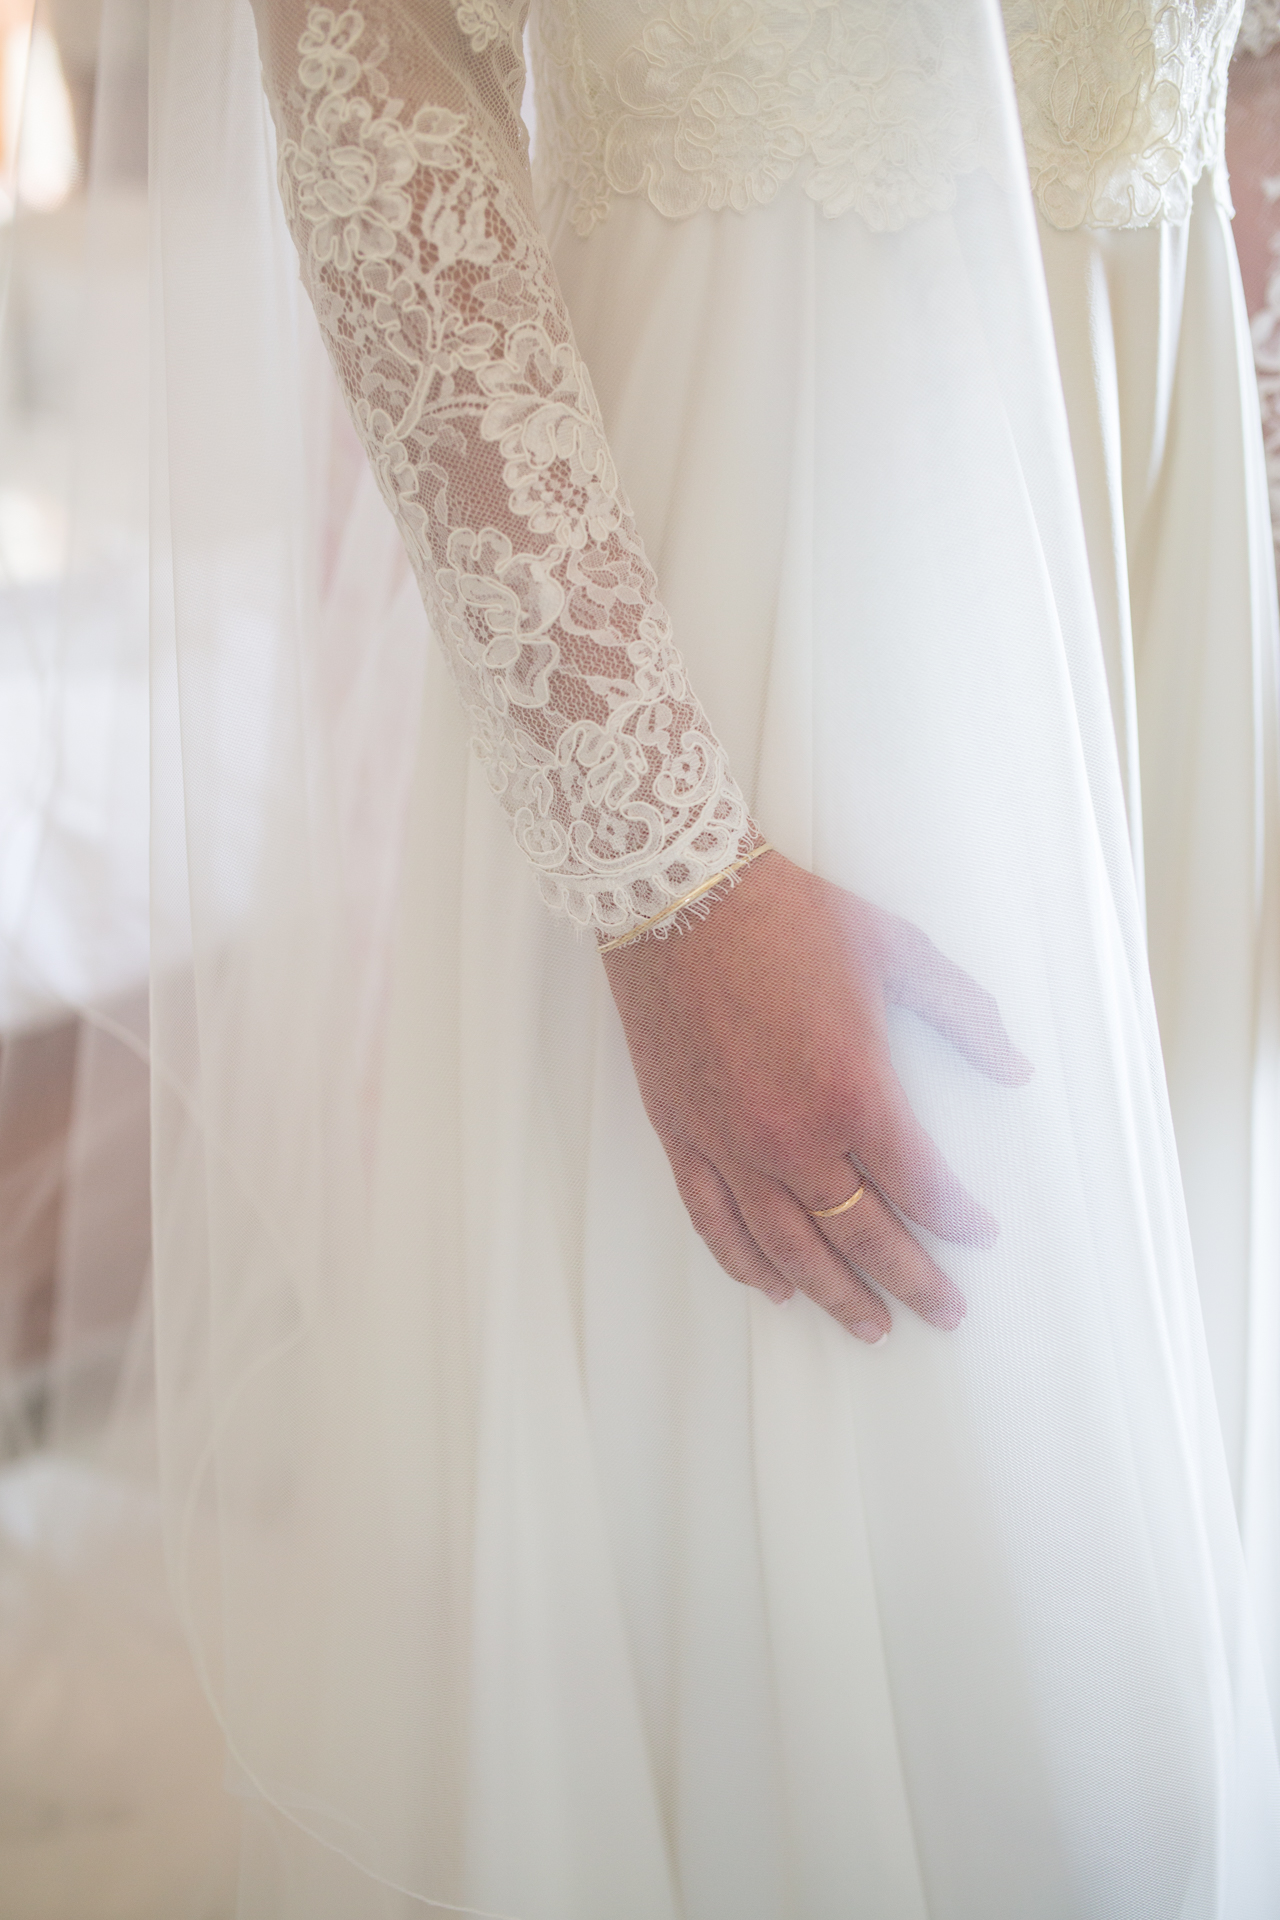 A detail of a wedding dres form From Frou bridal boutique